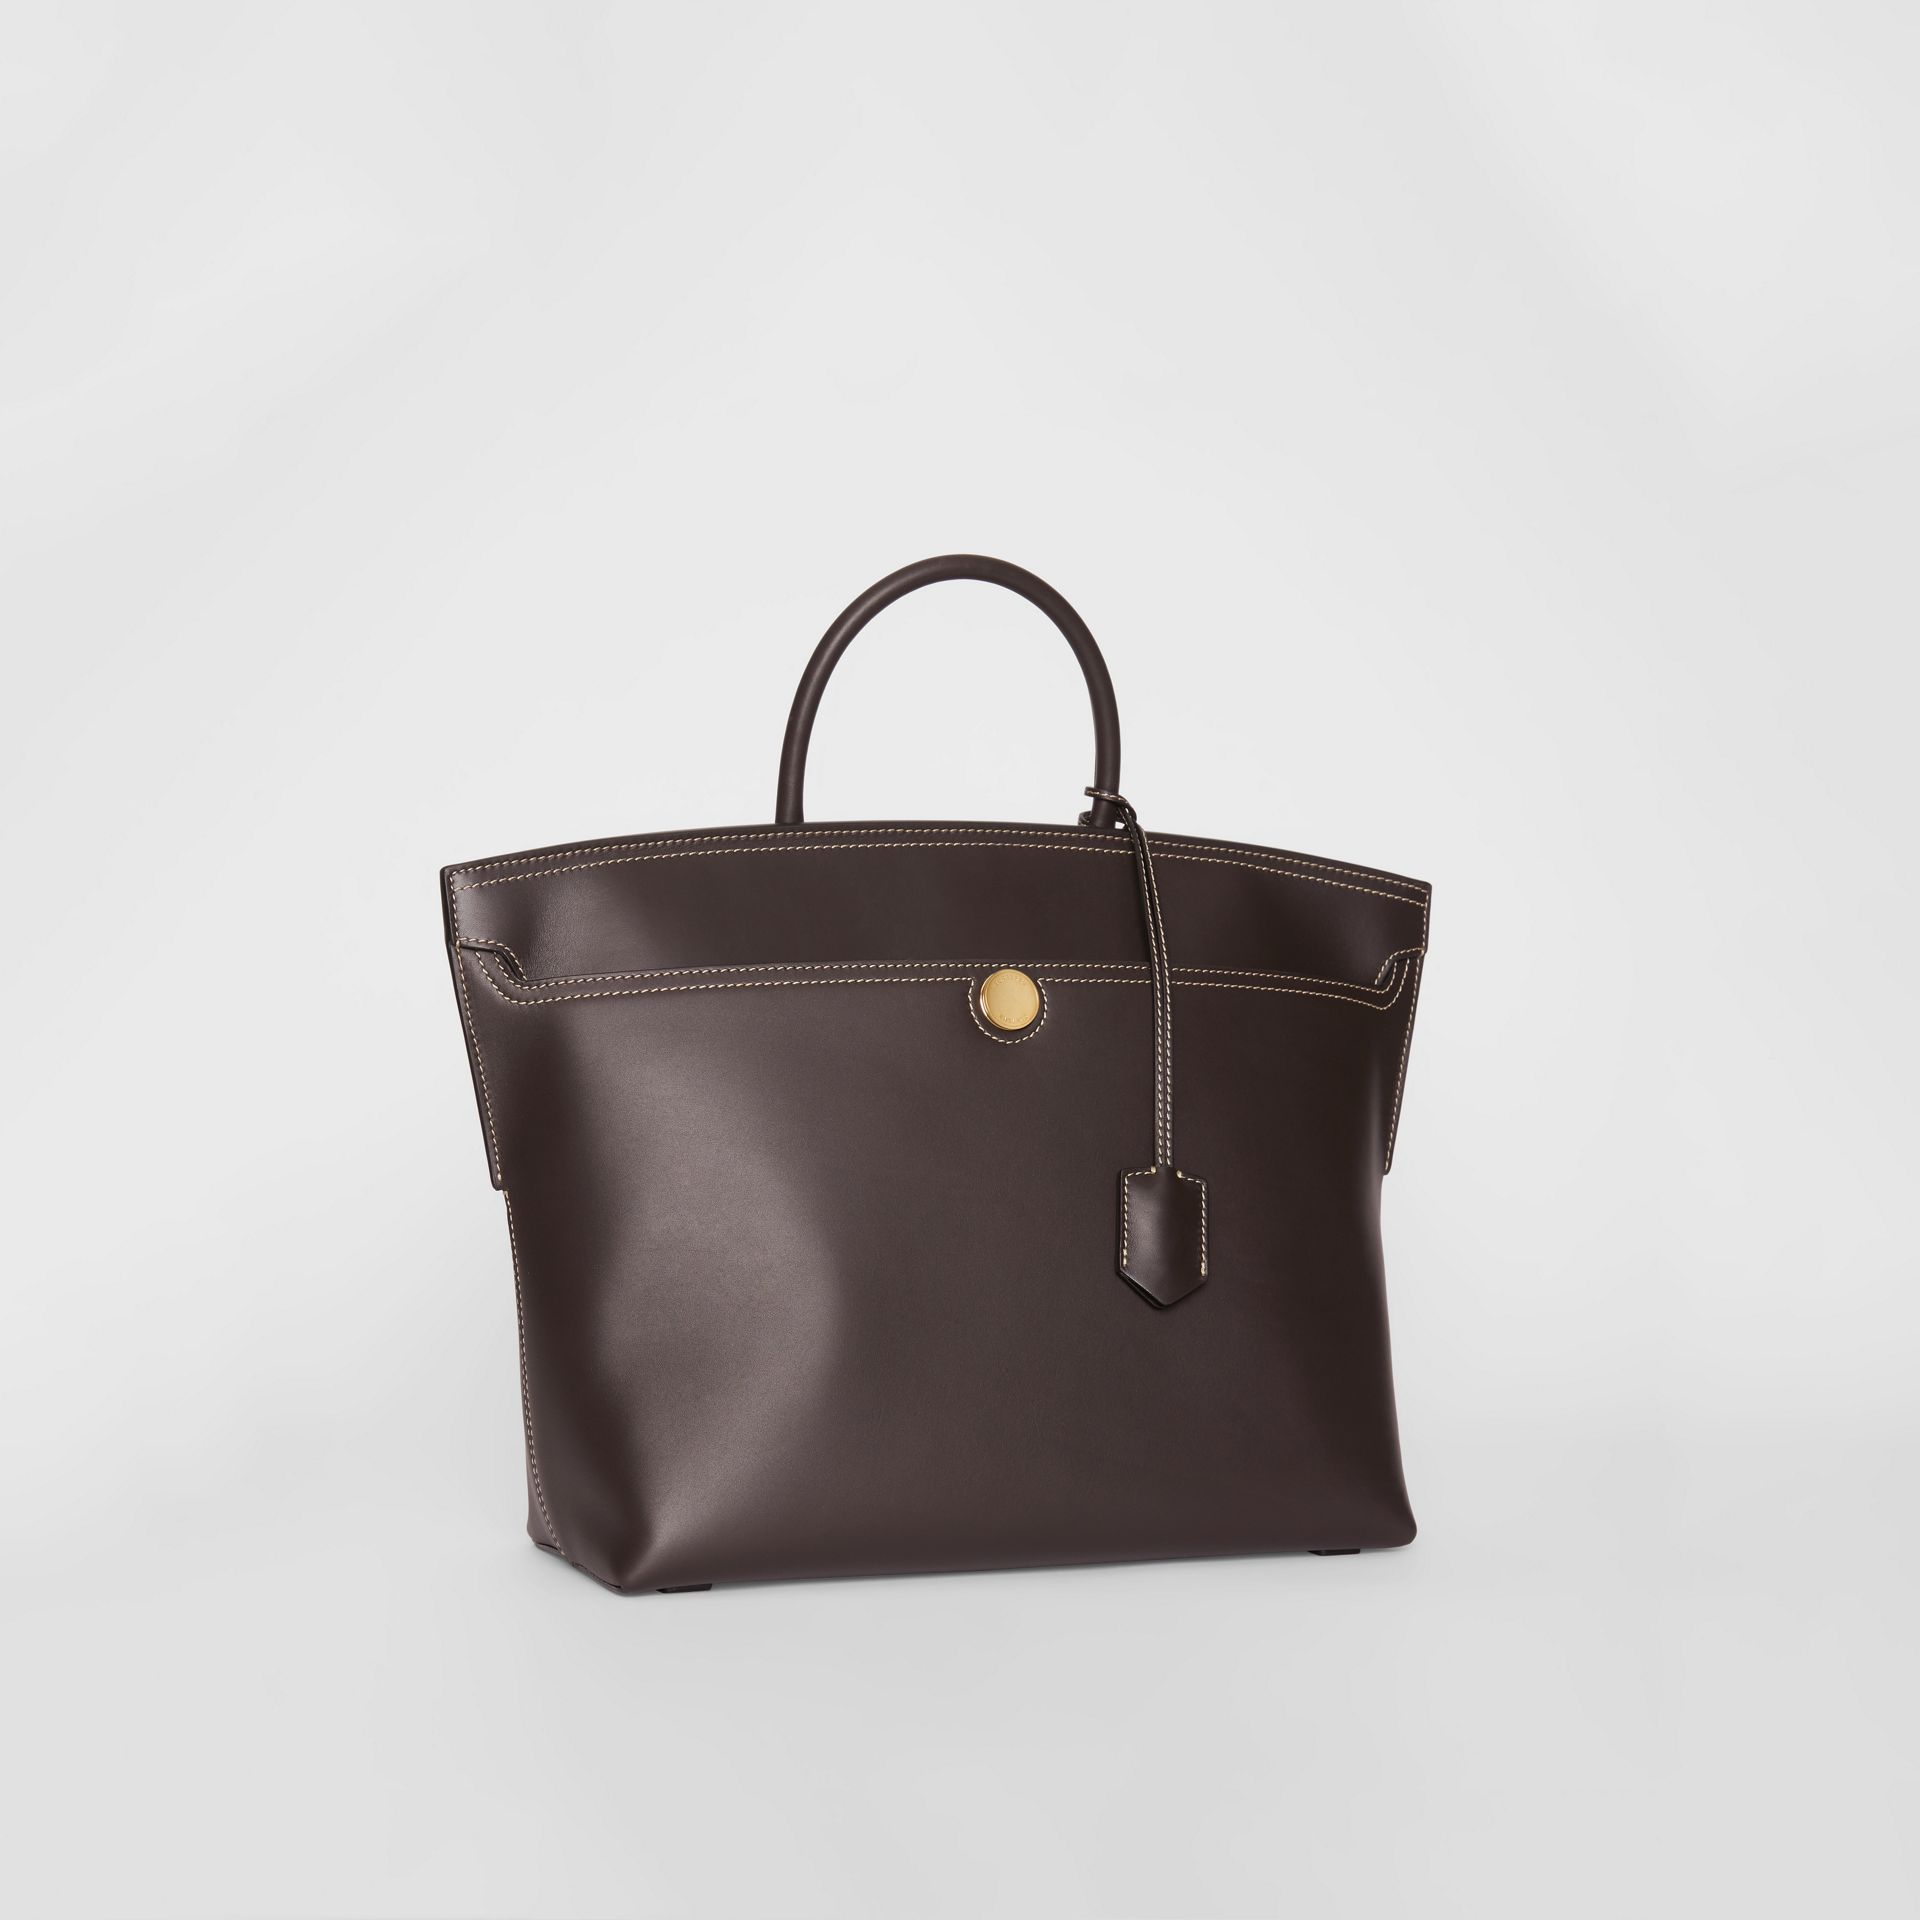 Leather Society Top Handle Bag in Coffee - Women | Burberry - gallery image 4